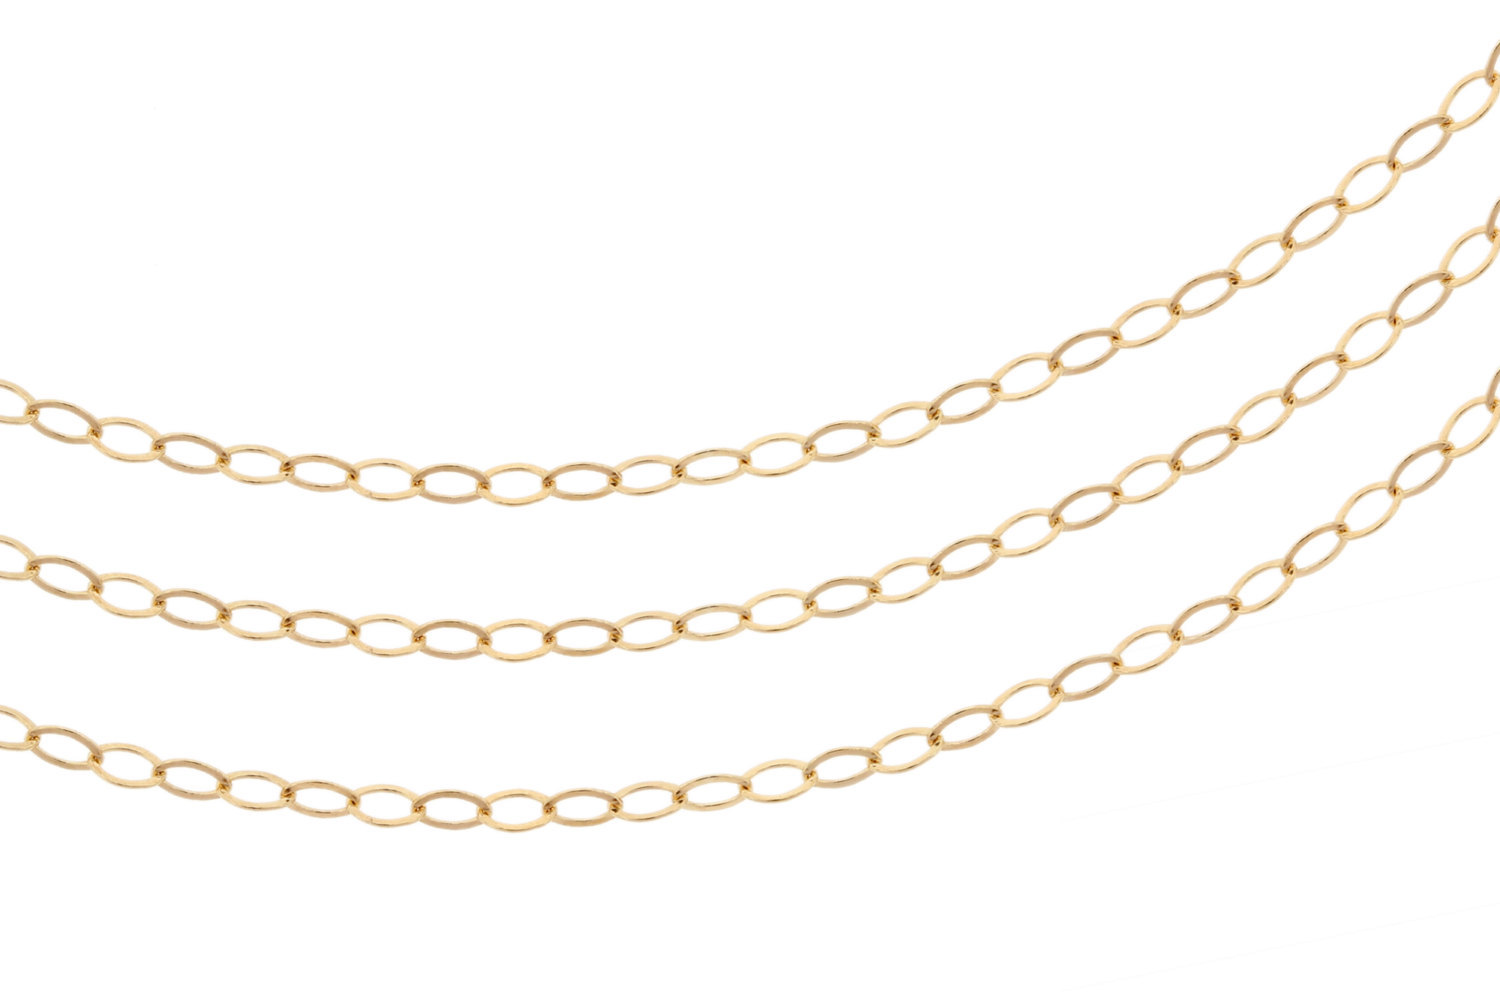 Primary image for Chain, Flat Cable Chain, 14Kt Gold Filled, 2.2x1.7mm, Pkg Of 20ft (2354-20)/1